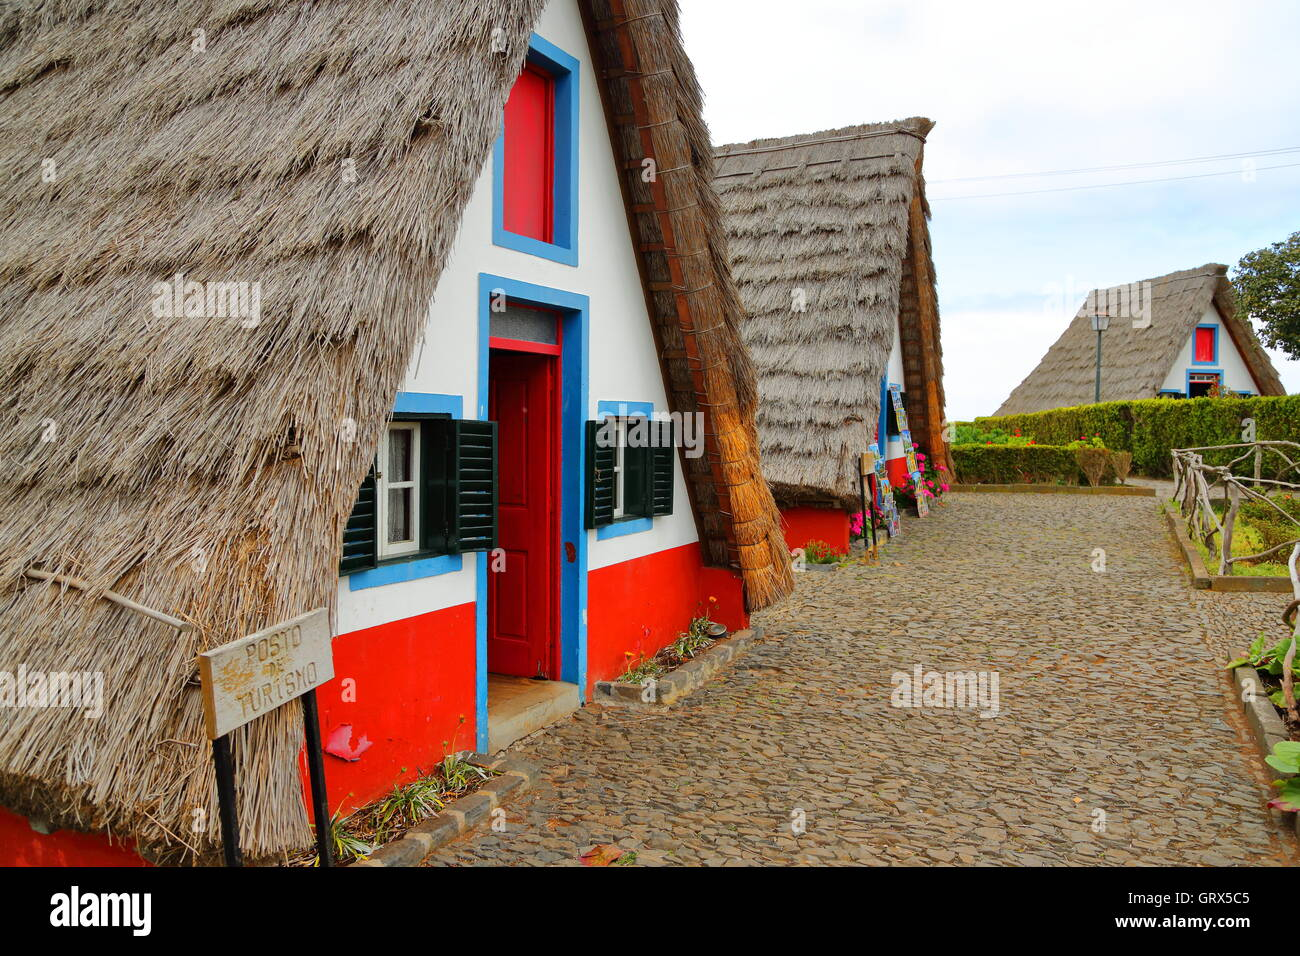 Typical houses in Santana in the north of the Portuguese island of Madeira - Stock Image